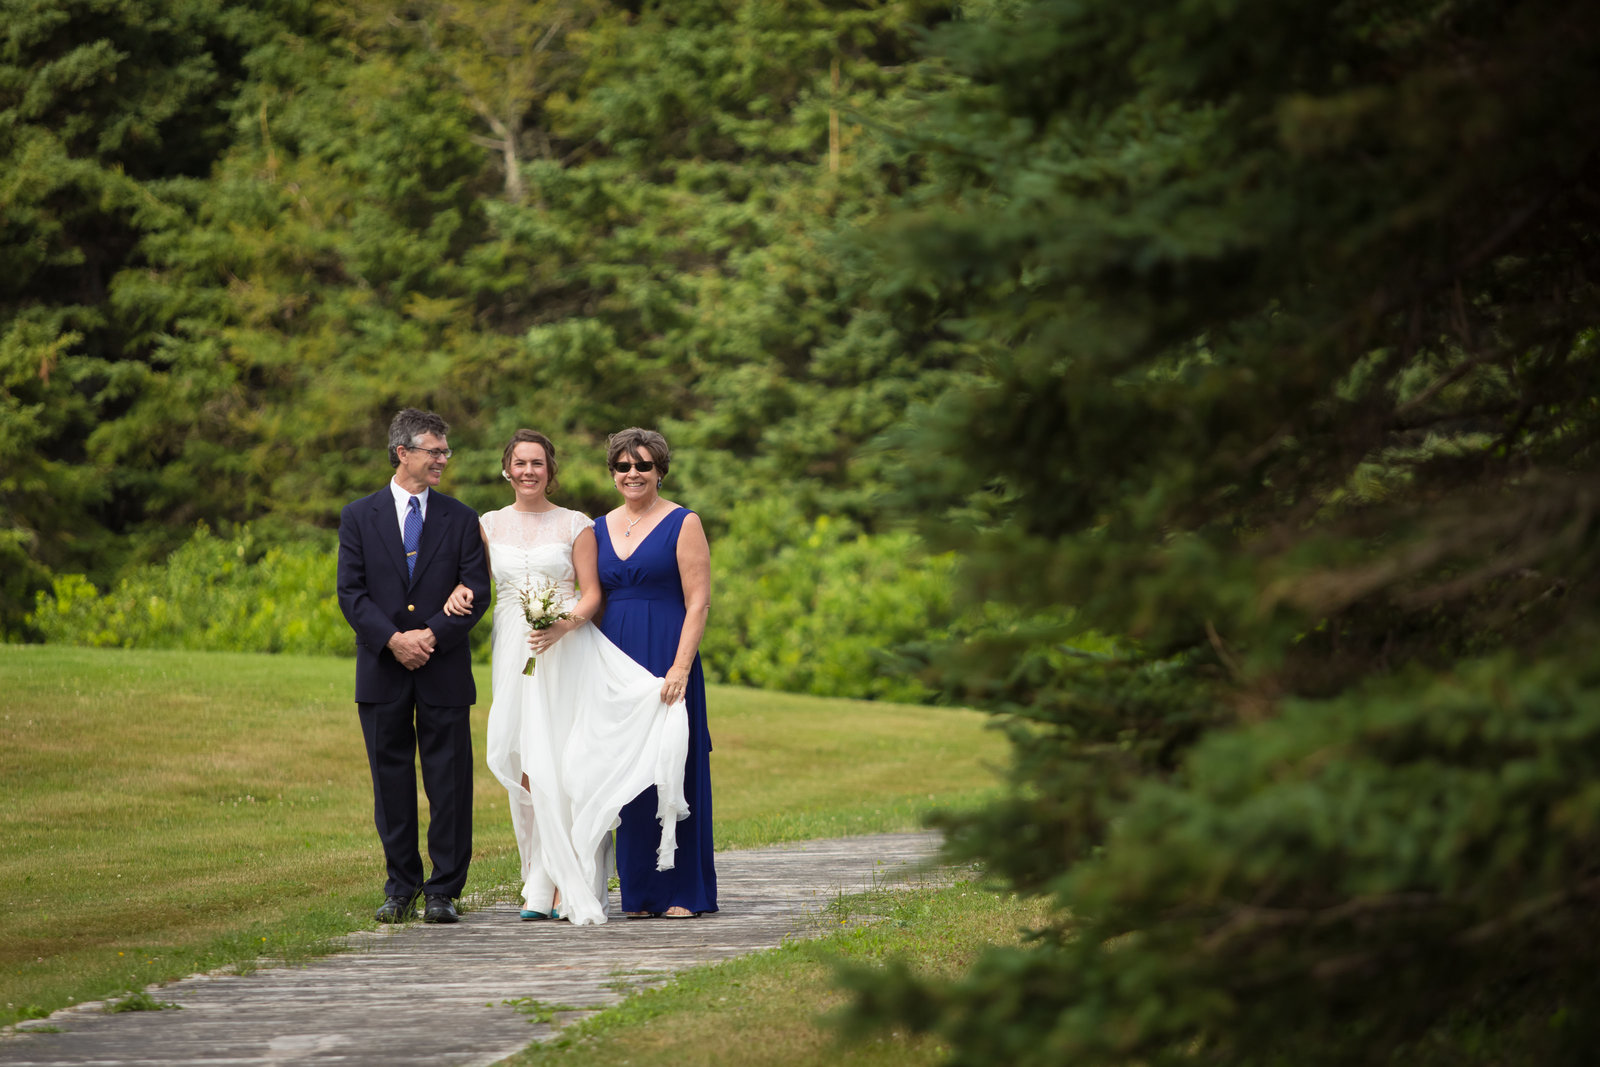 Saint John NB Wedding Photographers & Filmmakers - Souris, PEI Wedding22